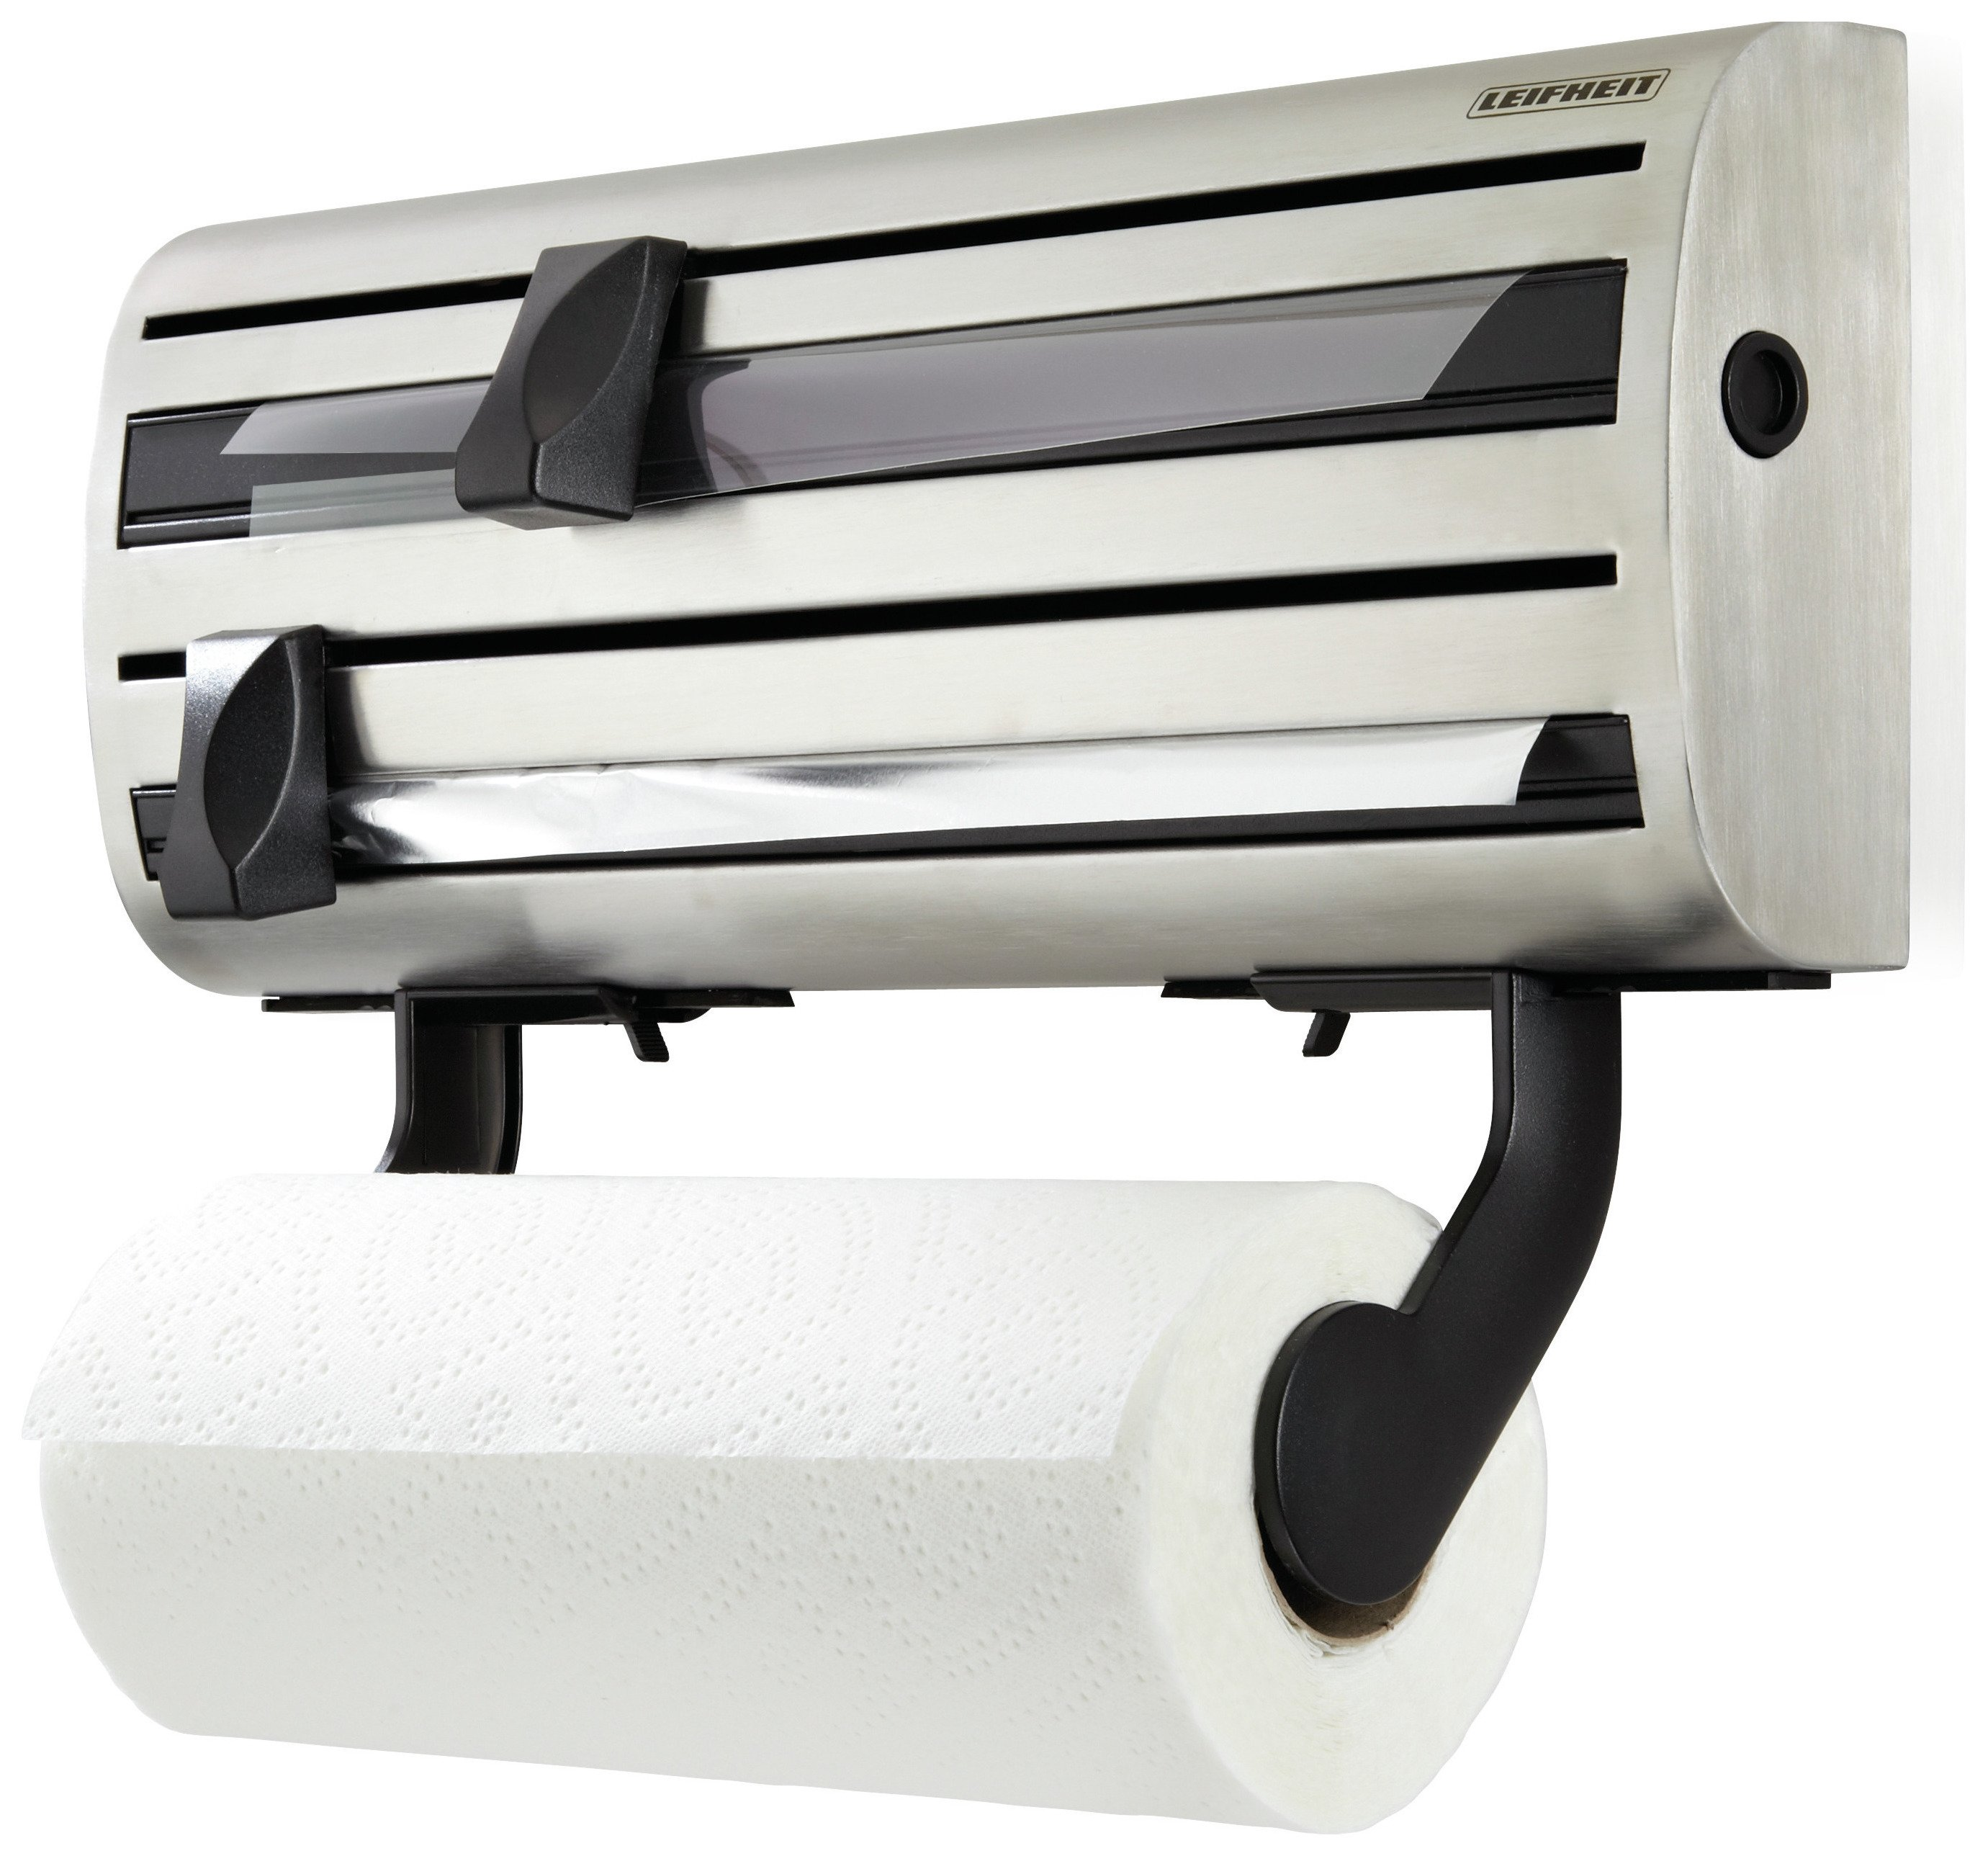 Image of Leifheit Kitchen Roll, Cling Film and Foil Dispenser